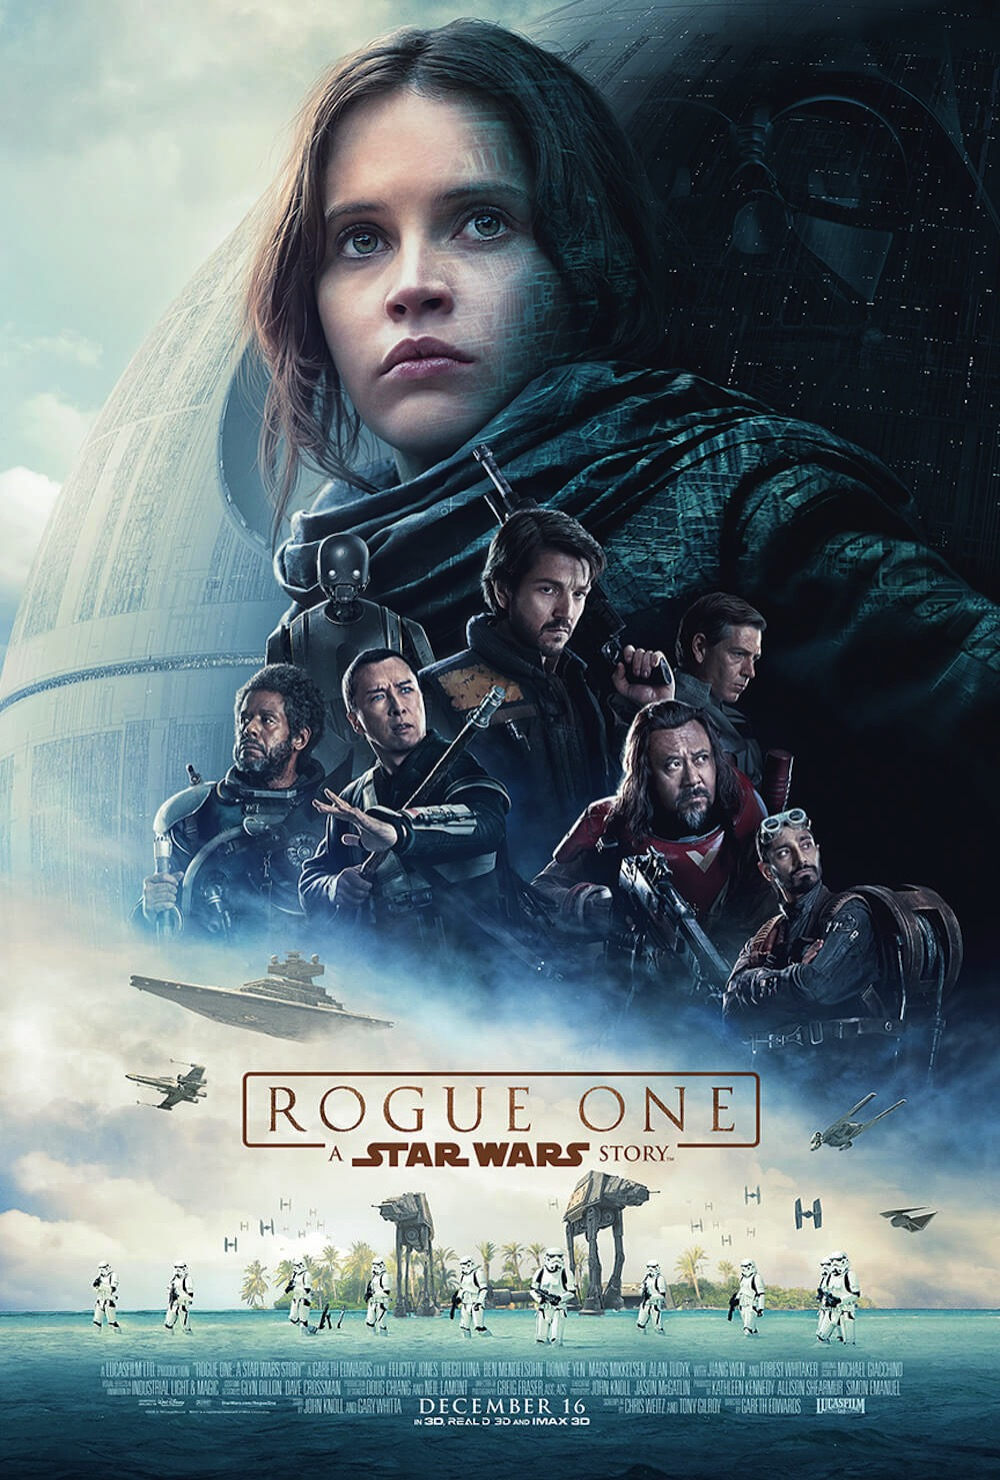 Rogue one final poster